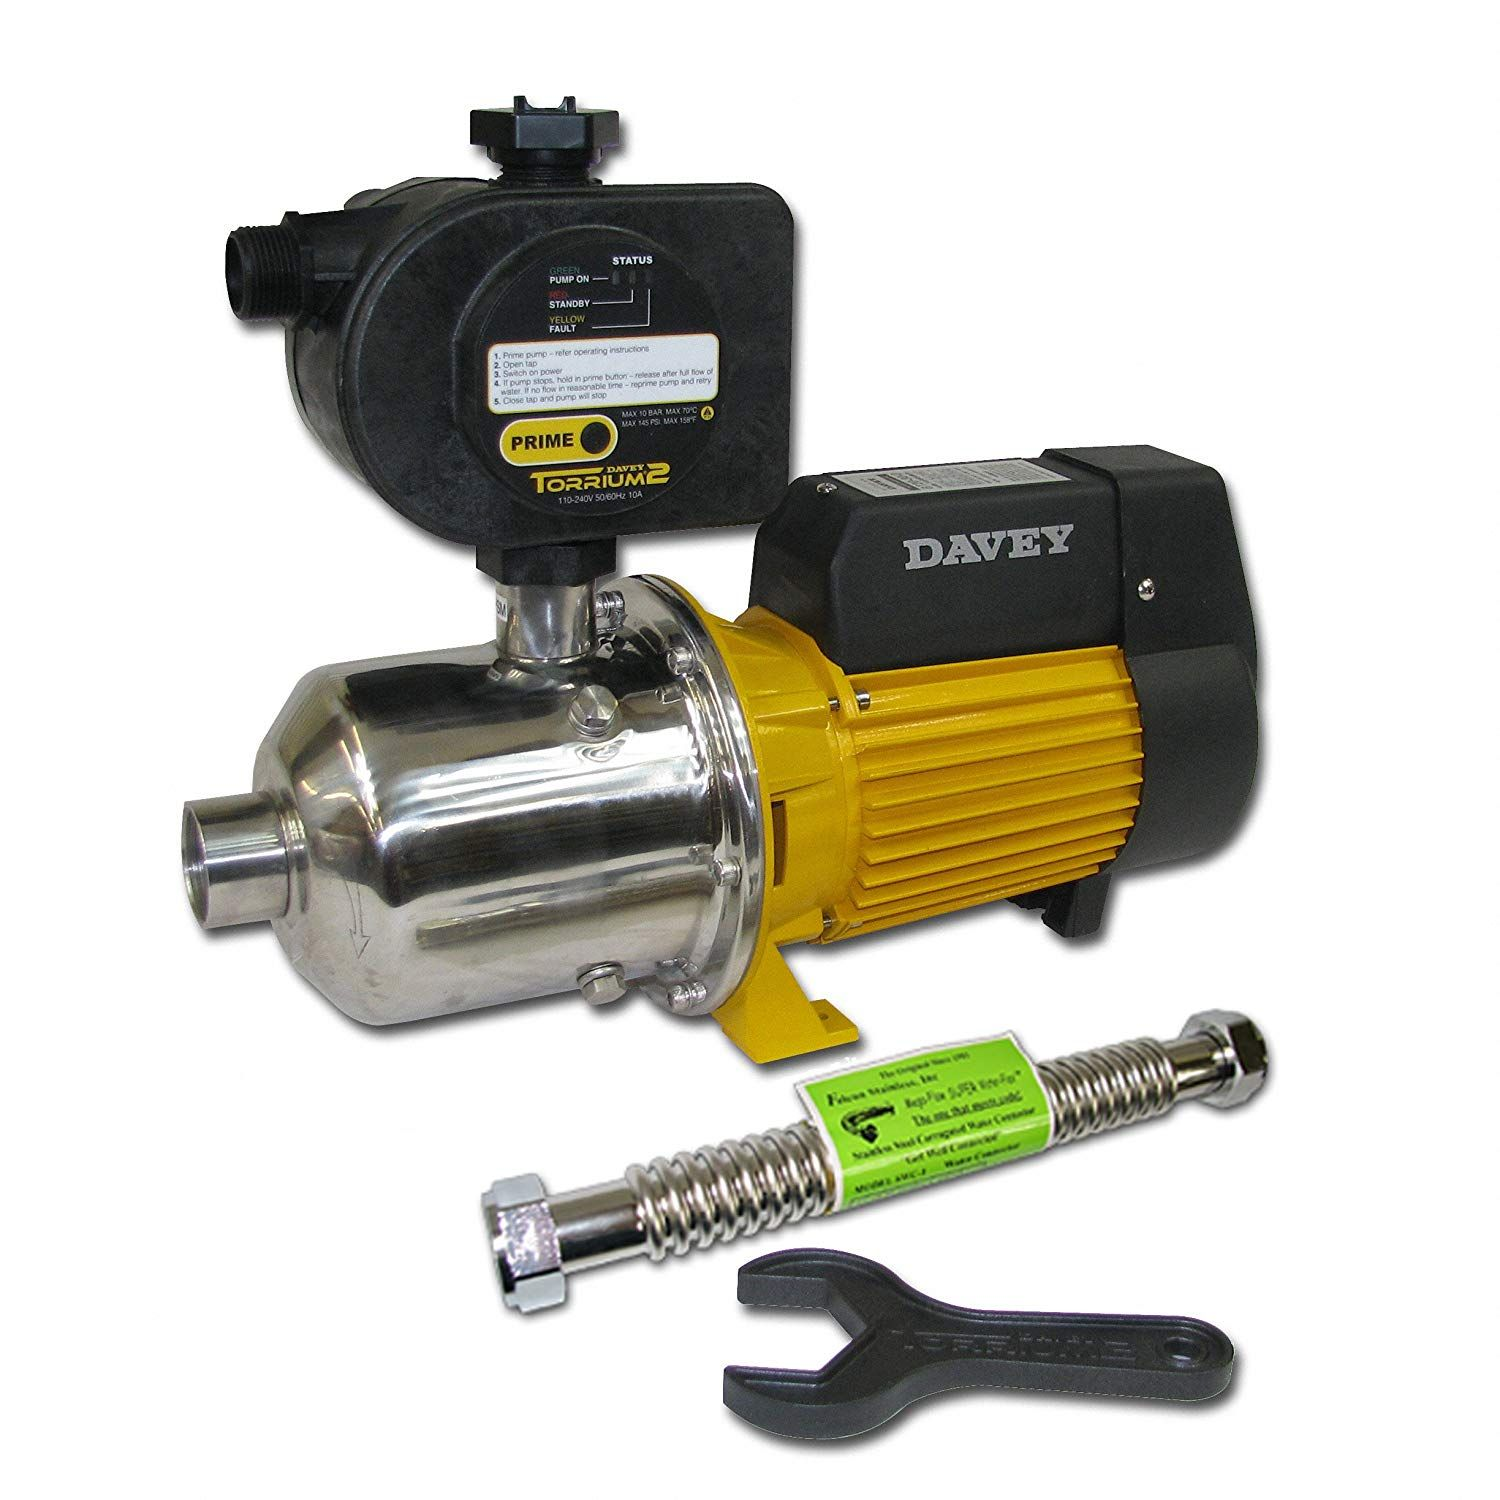 T2030T2USA Home Pressure Booster Pump Pumps, Home tool